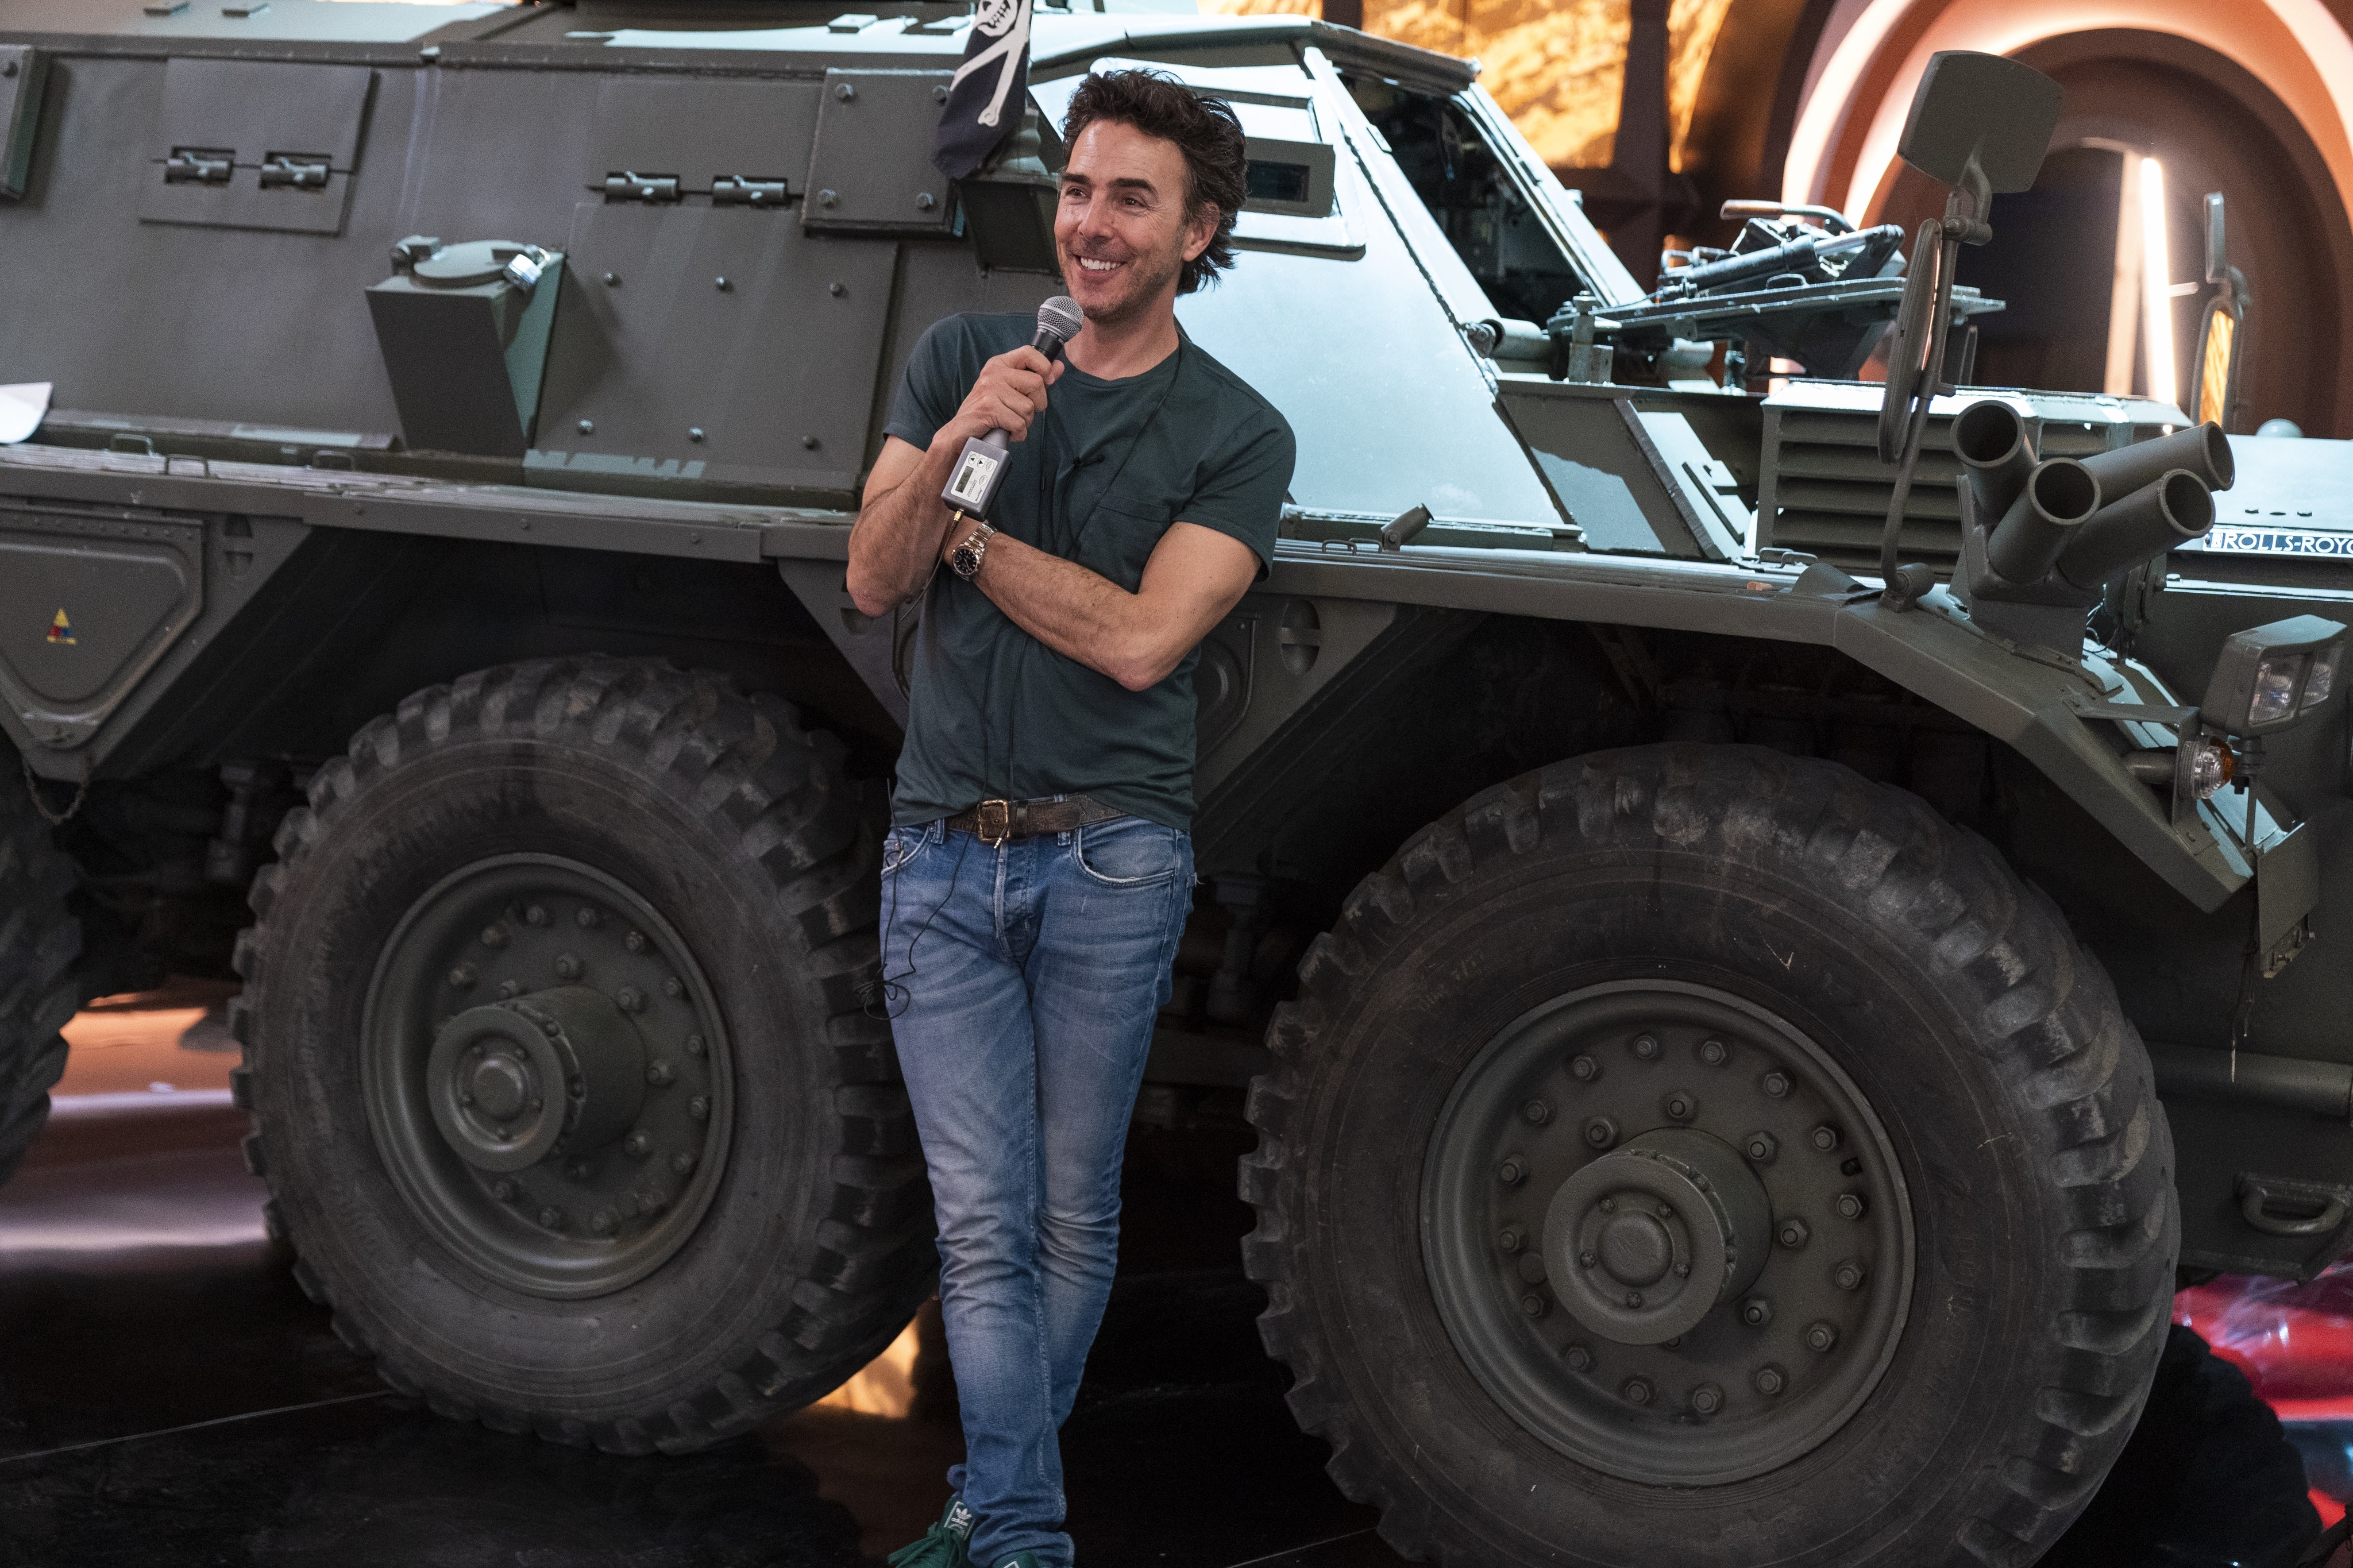 Free Guy Director Shawn Levy leans up against a large car on set